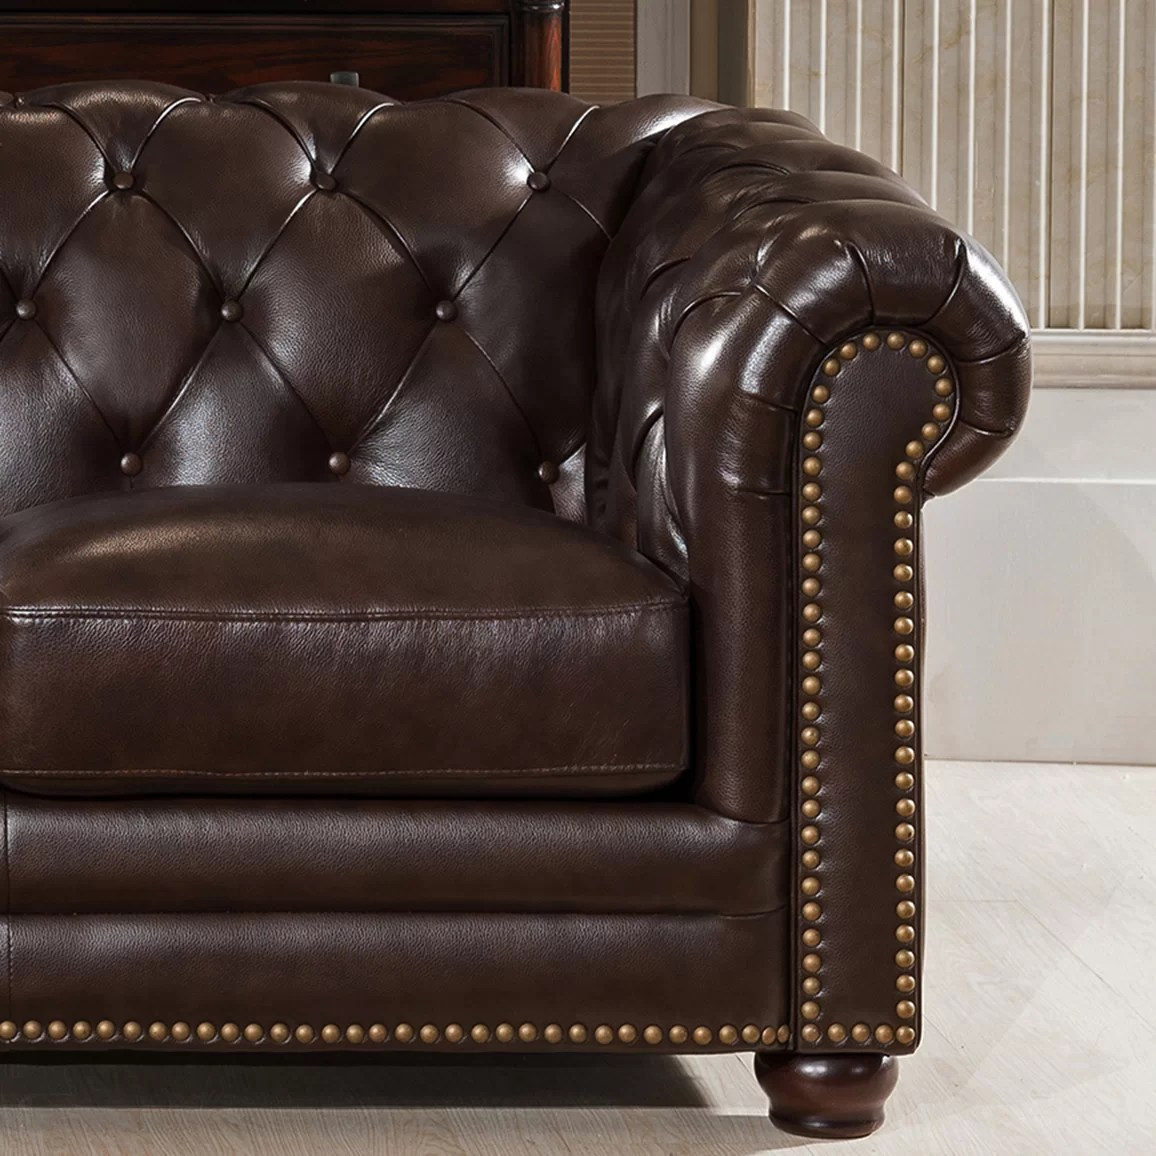 Best Leather Chairs Amax Kensington Top Grain Leather Chesterfield Sofa And